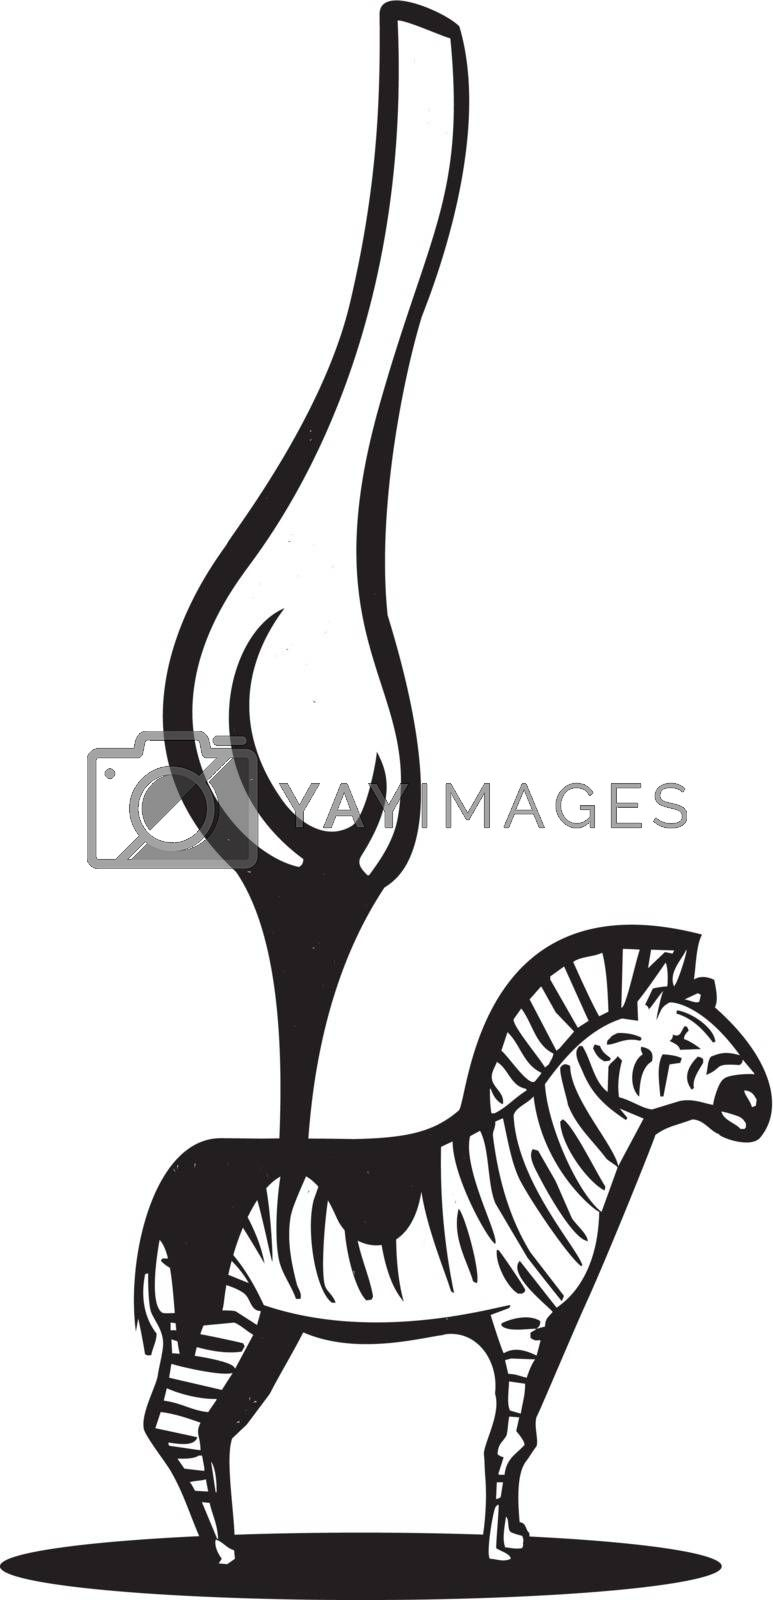 Spoon pouring black liquid over a zebra with stripes.